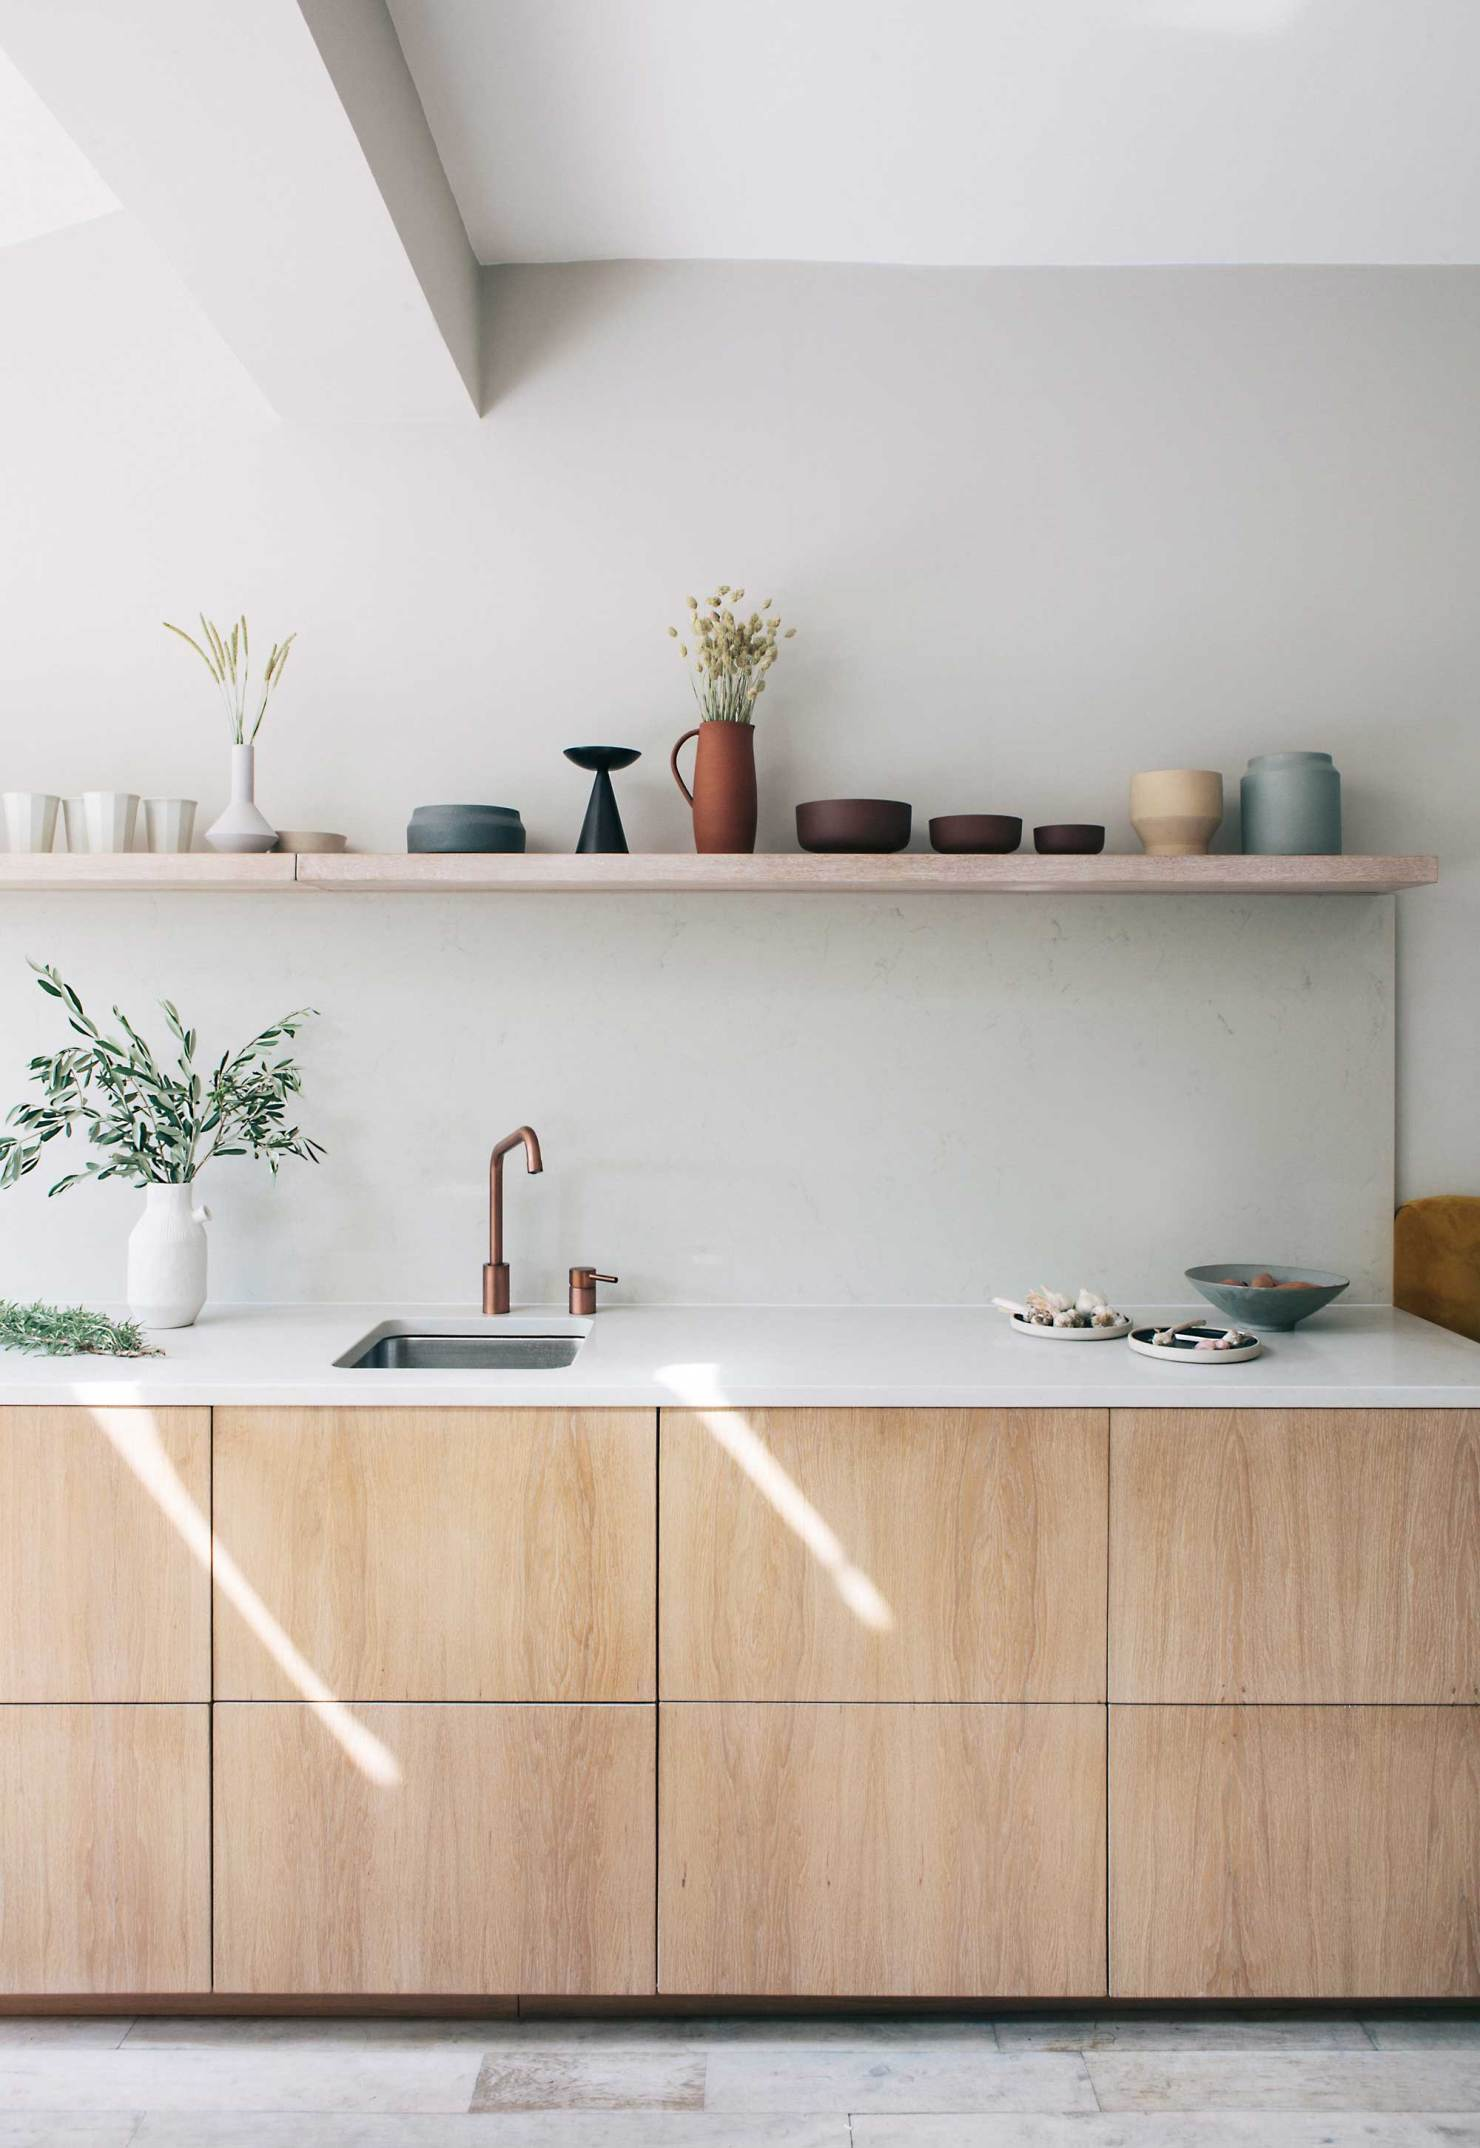 natural wood cabinets with a marble white countertops in a Scandinavian kitchen design